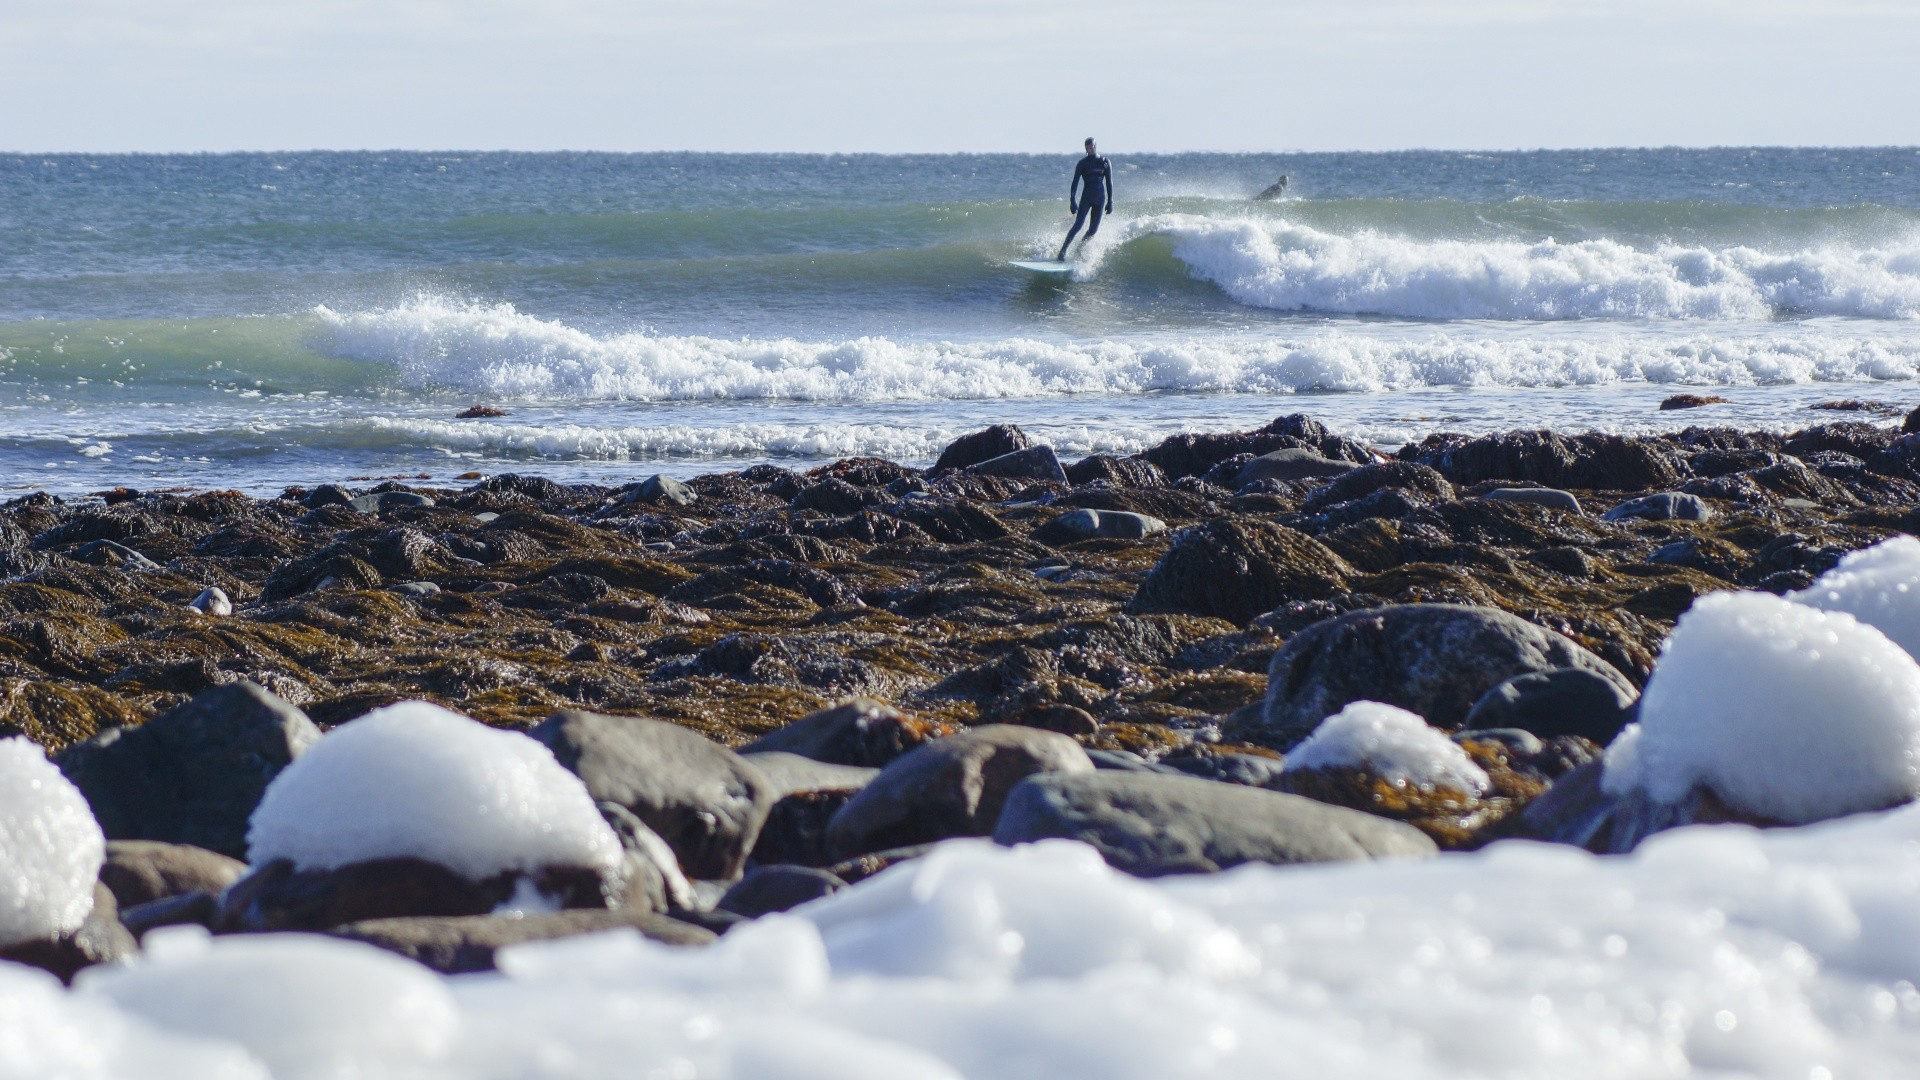 cruzphoto's photo of Lawrencetown